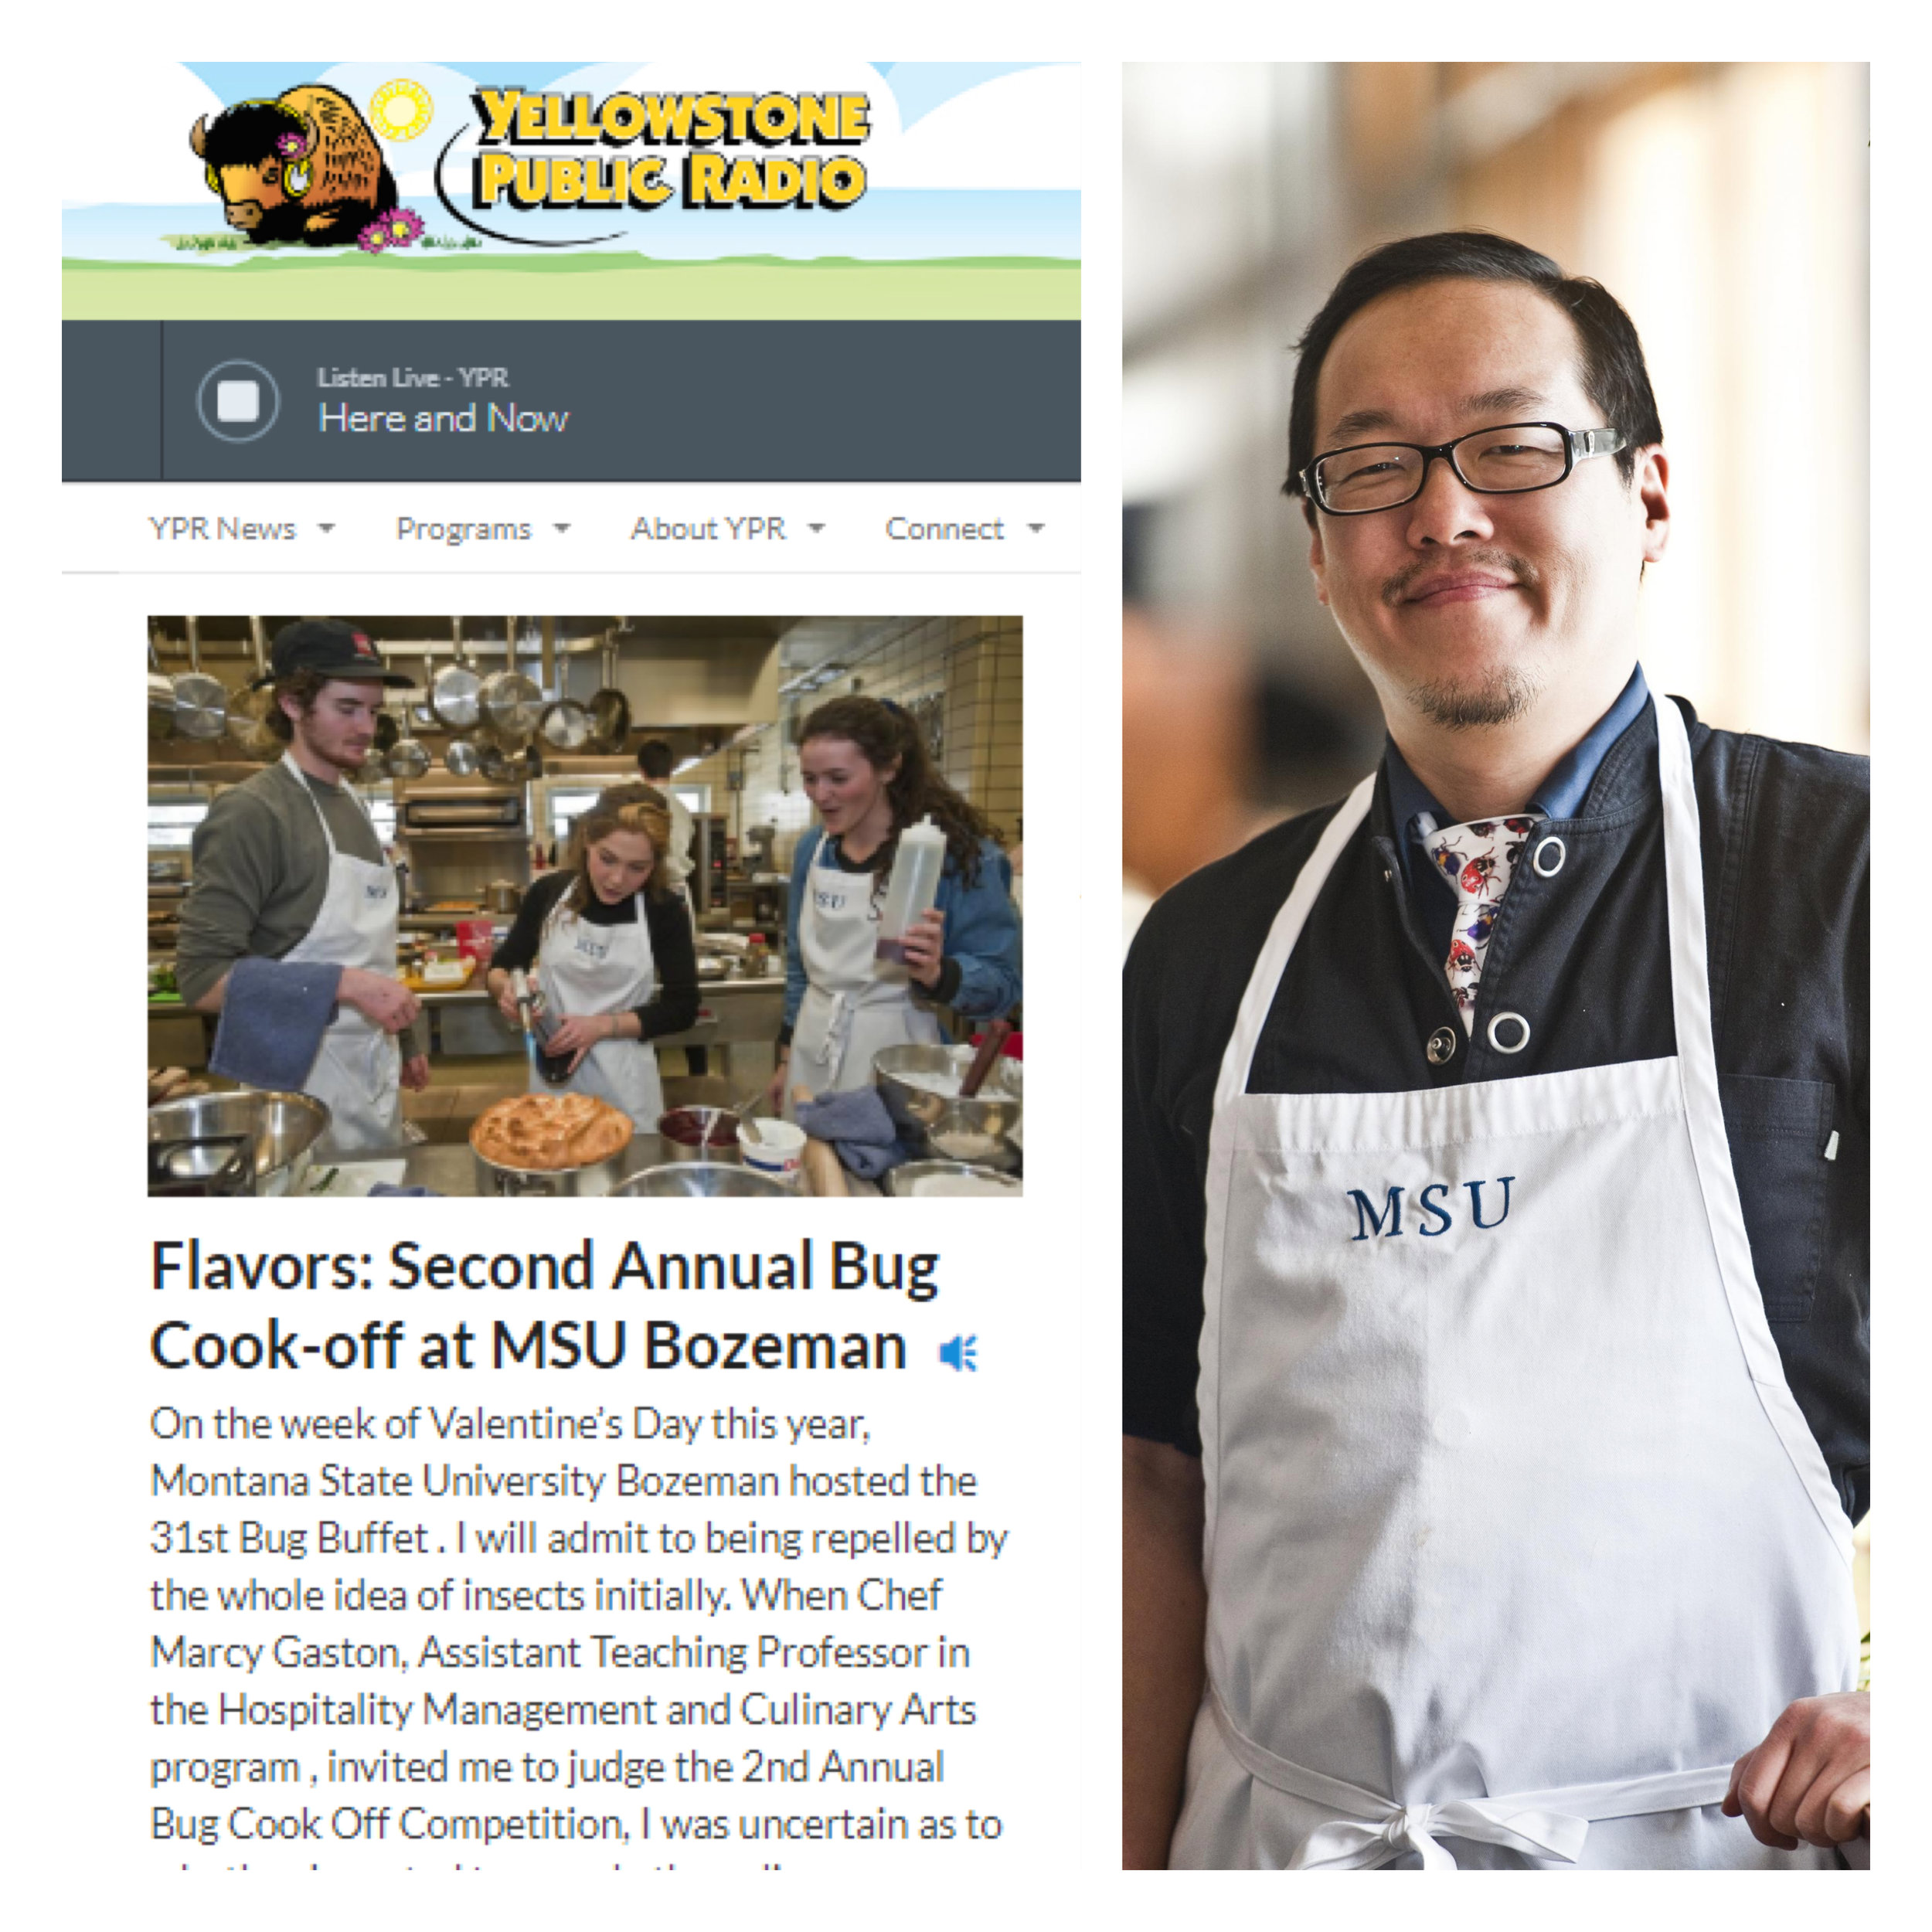 https://www.ypradio.org/post/flavors-second-annual-bug-cook-msu-bozeman#stream/0